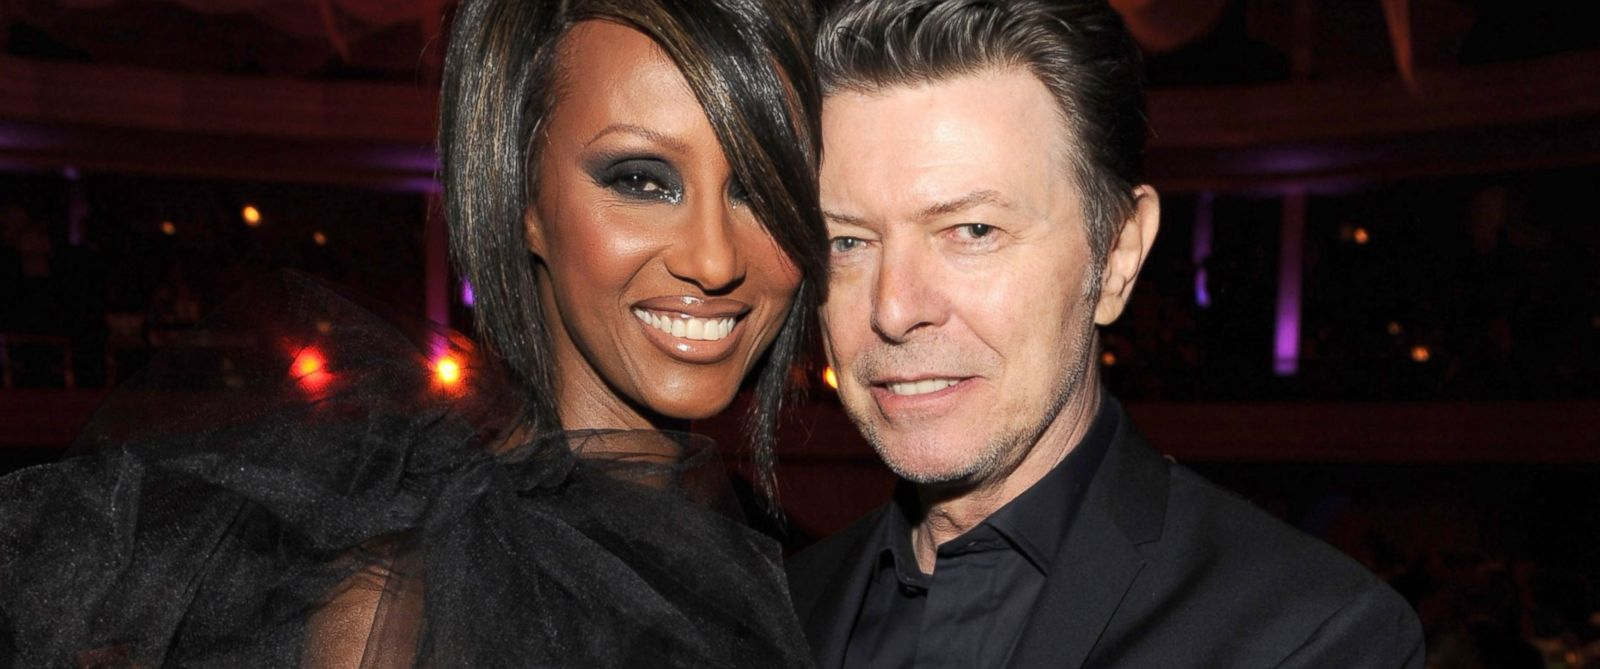 PHOTO: Iman and David Bowie attend the Keep A Child Alives 6th Annual Black Ball hosted by Alicia Keys and Padma Lakshmi at Hammerstein Ballroom, Oct. 15, 2009, in New York City.